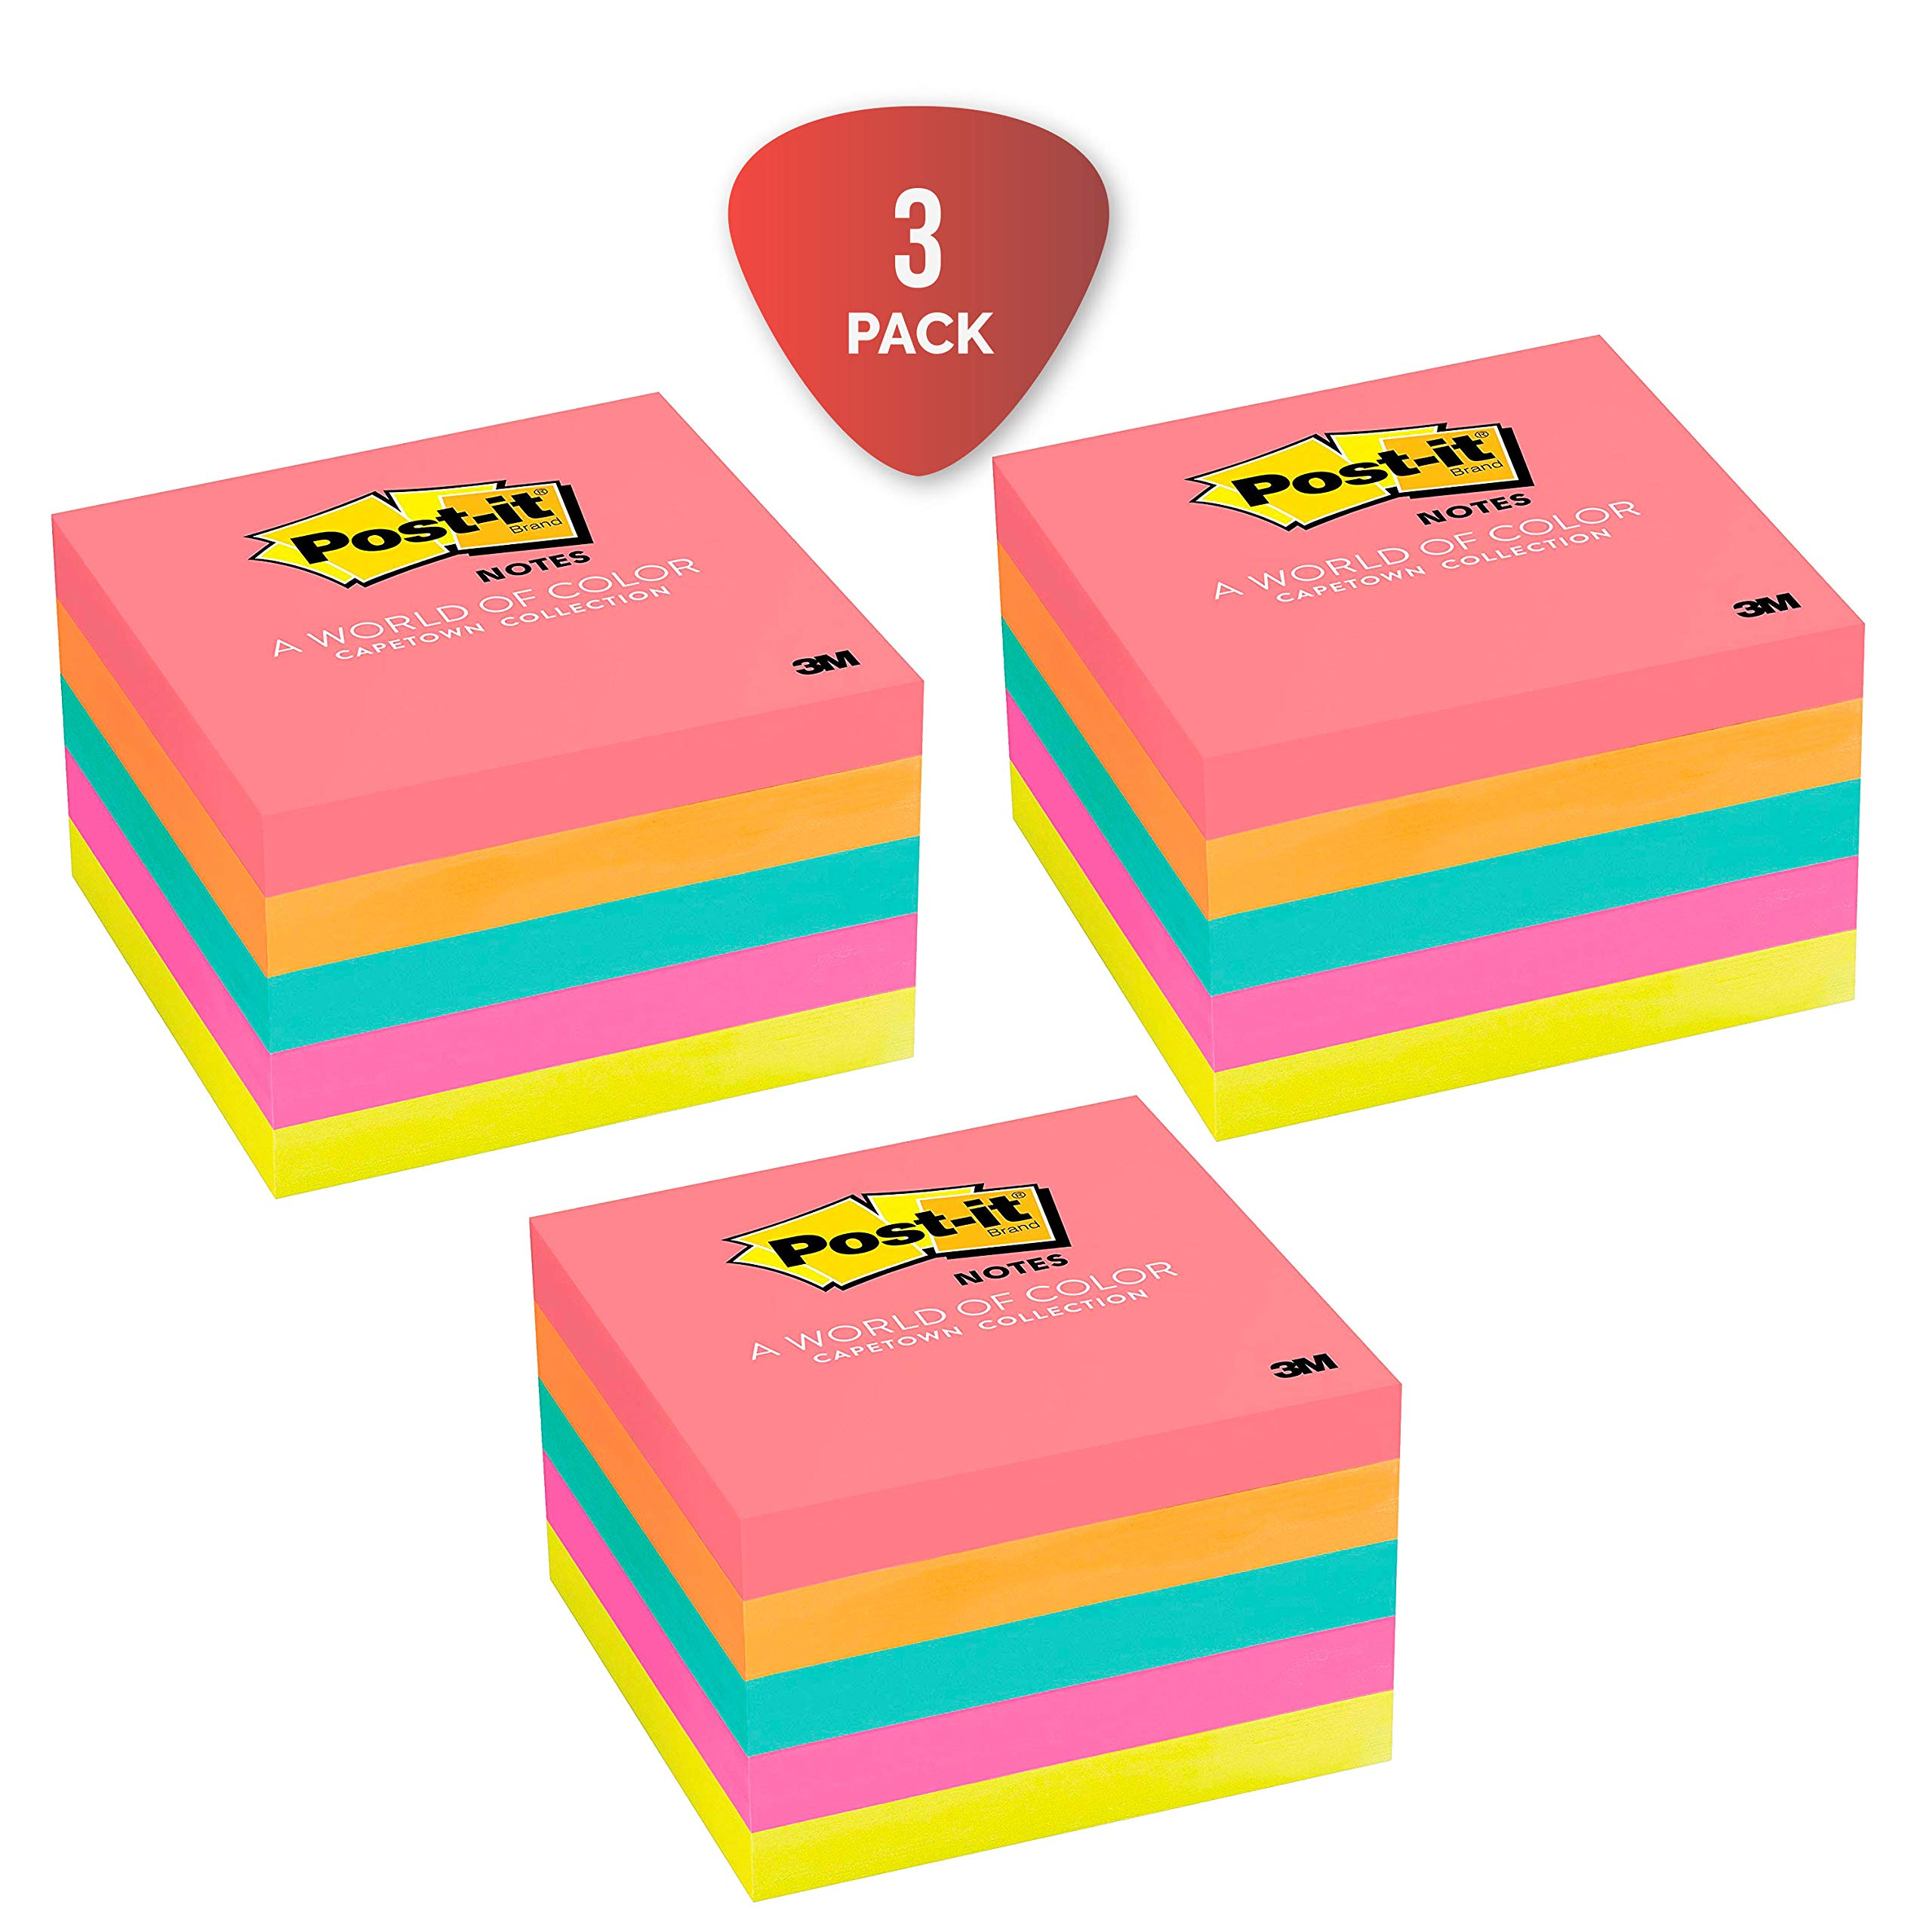 Post-it Notes, 5 Pads, America's #1 Favorite Sticky Note, Call Out Important Information, Cape Town Colors, 3 x 3, 100 Sheets/Pad (654-5PK) Pack of 3 by Post-it